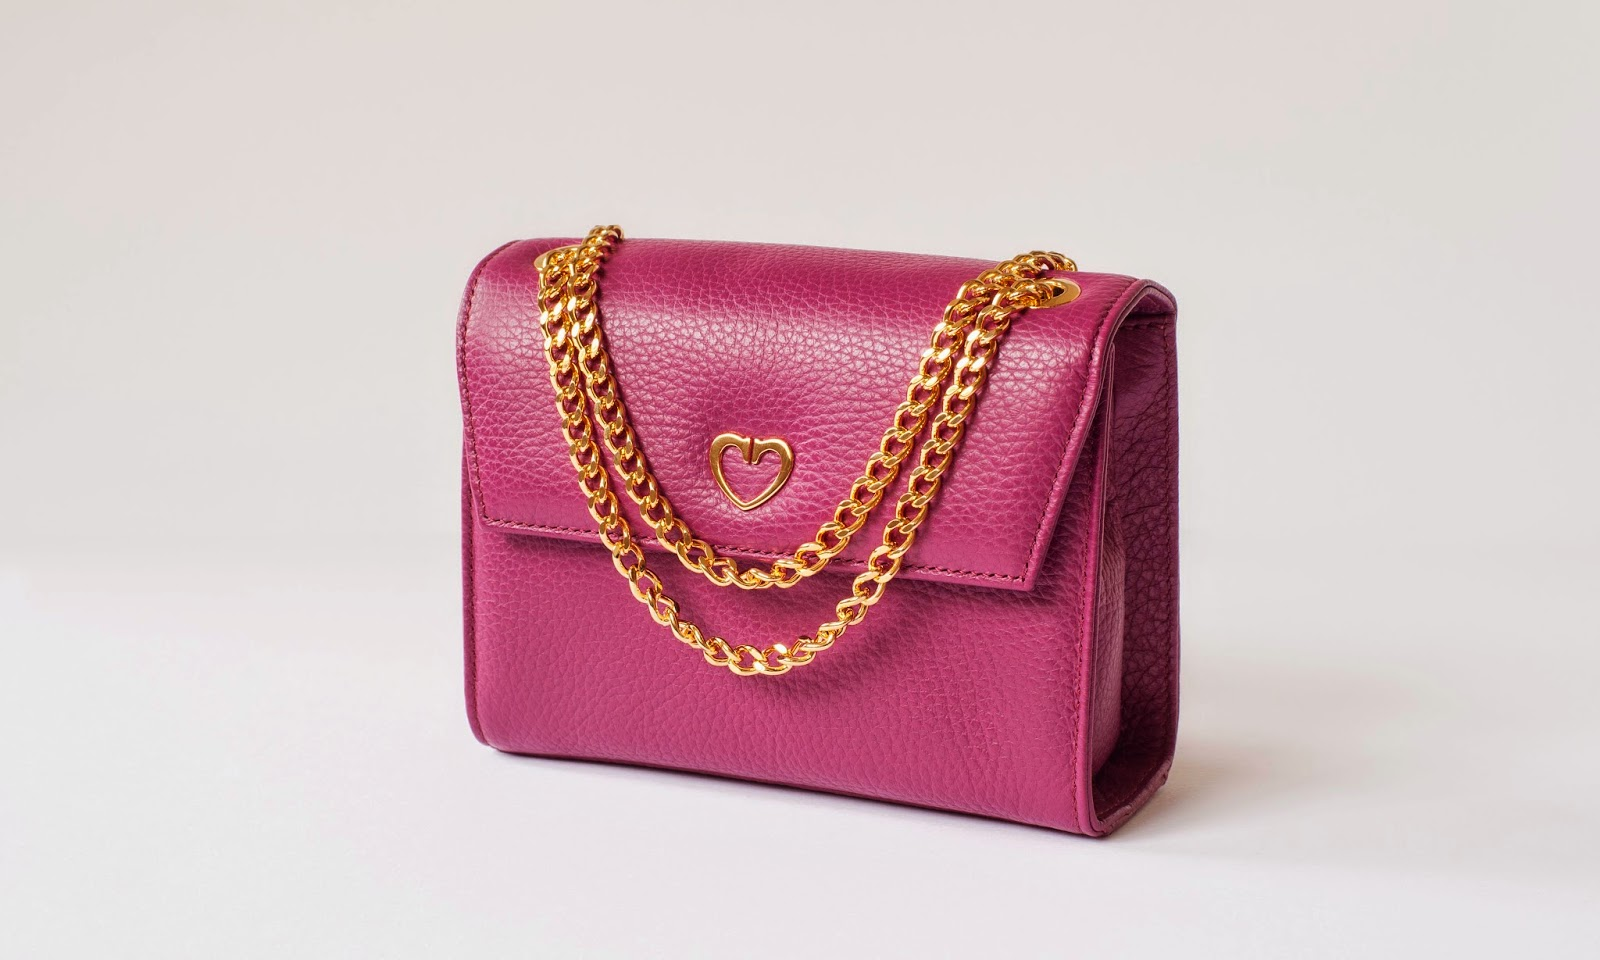 d44928d850 My Vitrina  First Look  Cruciani Mini Bag S S 14 Collection